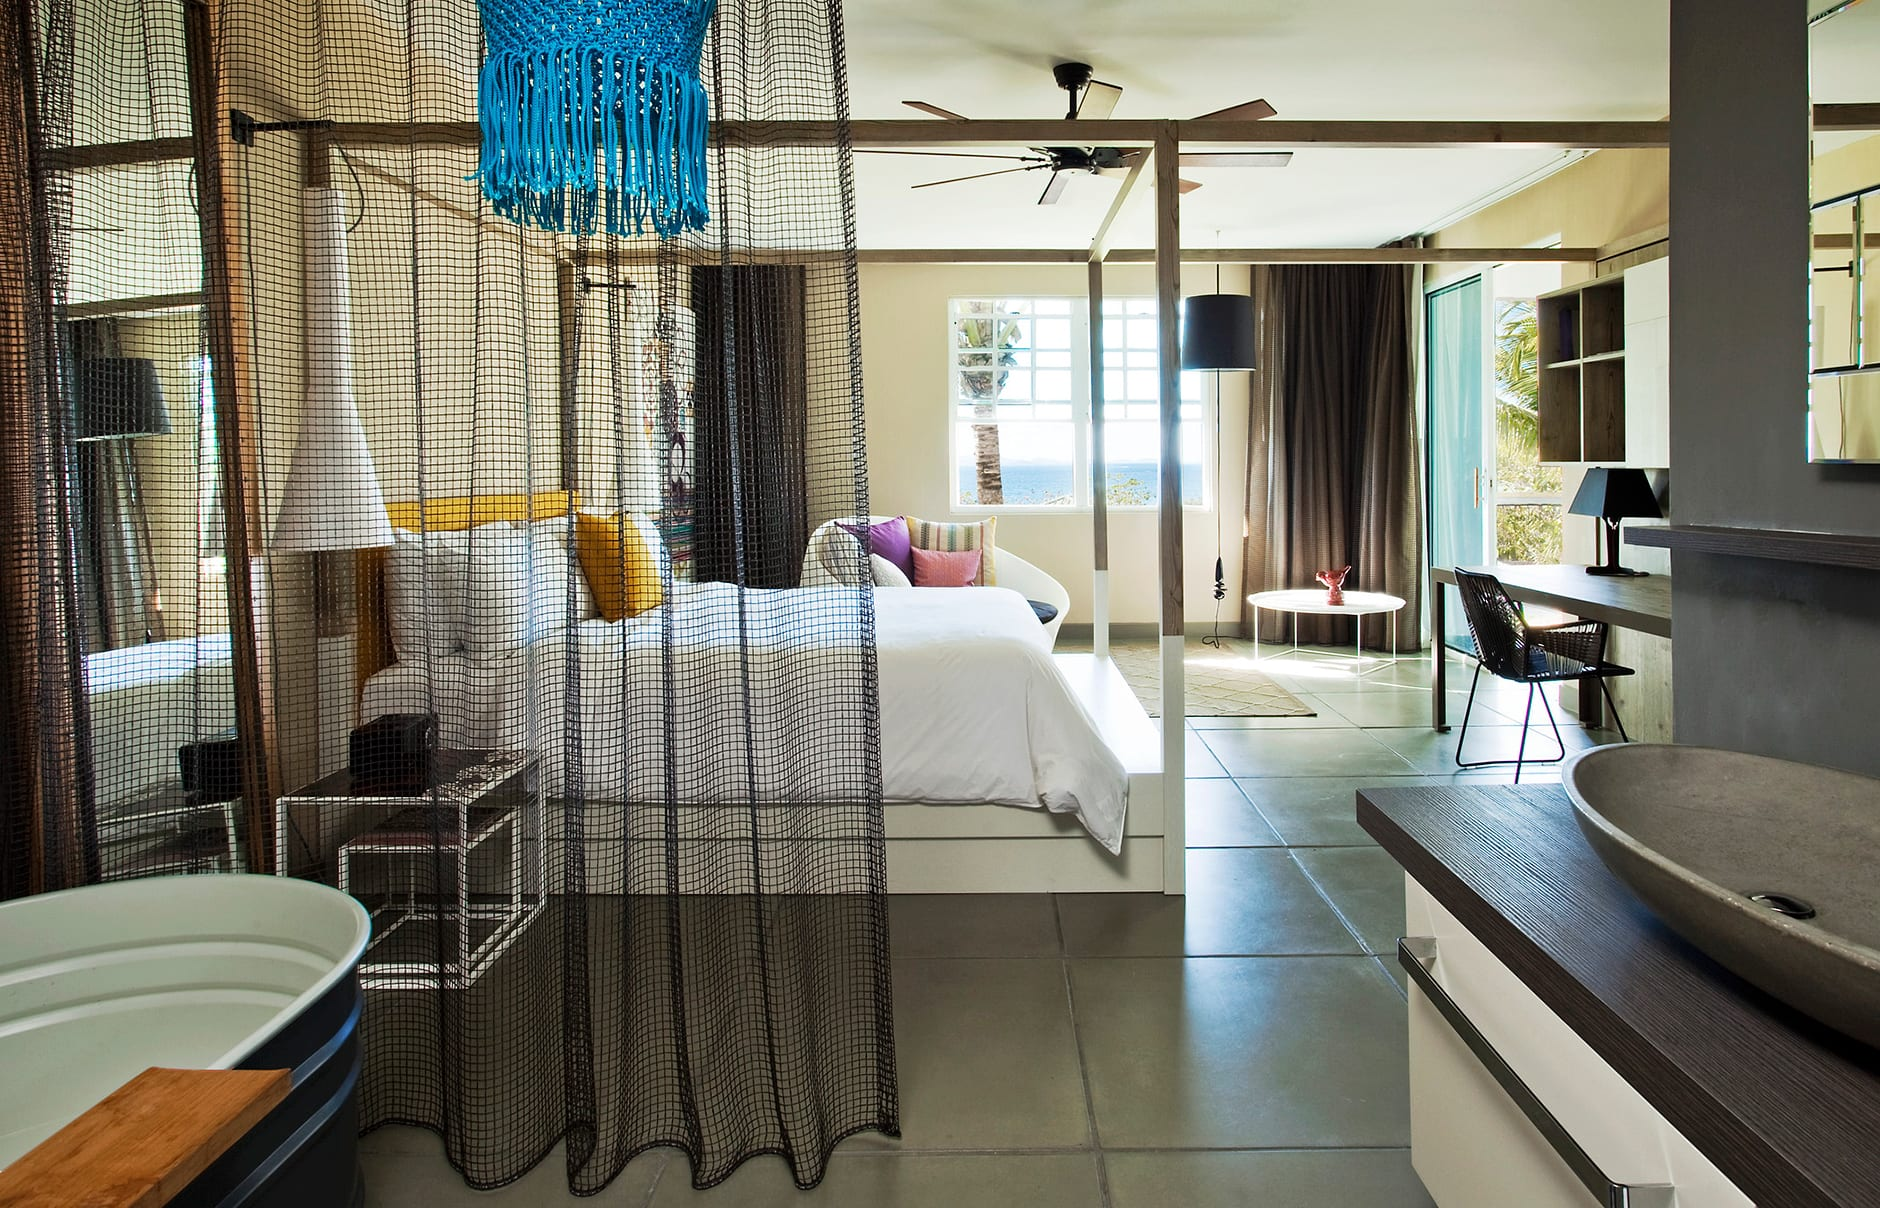 Marvelous Retreat bedroom. W Retreat & Spa – Vieques Island, Puerto Rico. © Starwood Hotels & Resorts